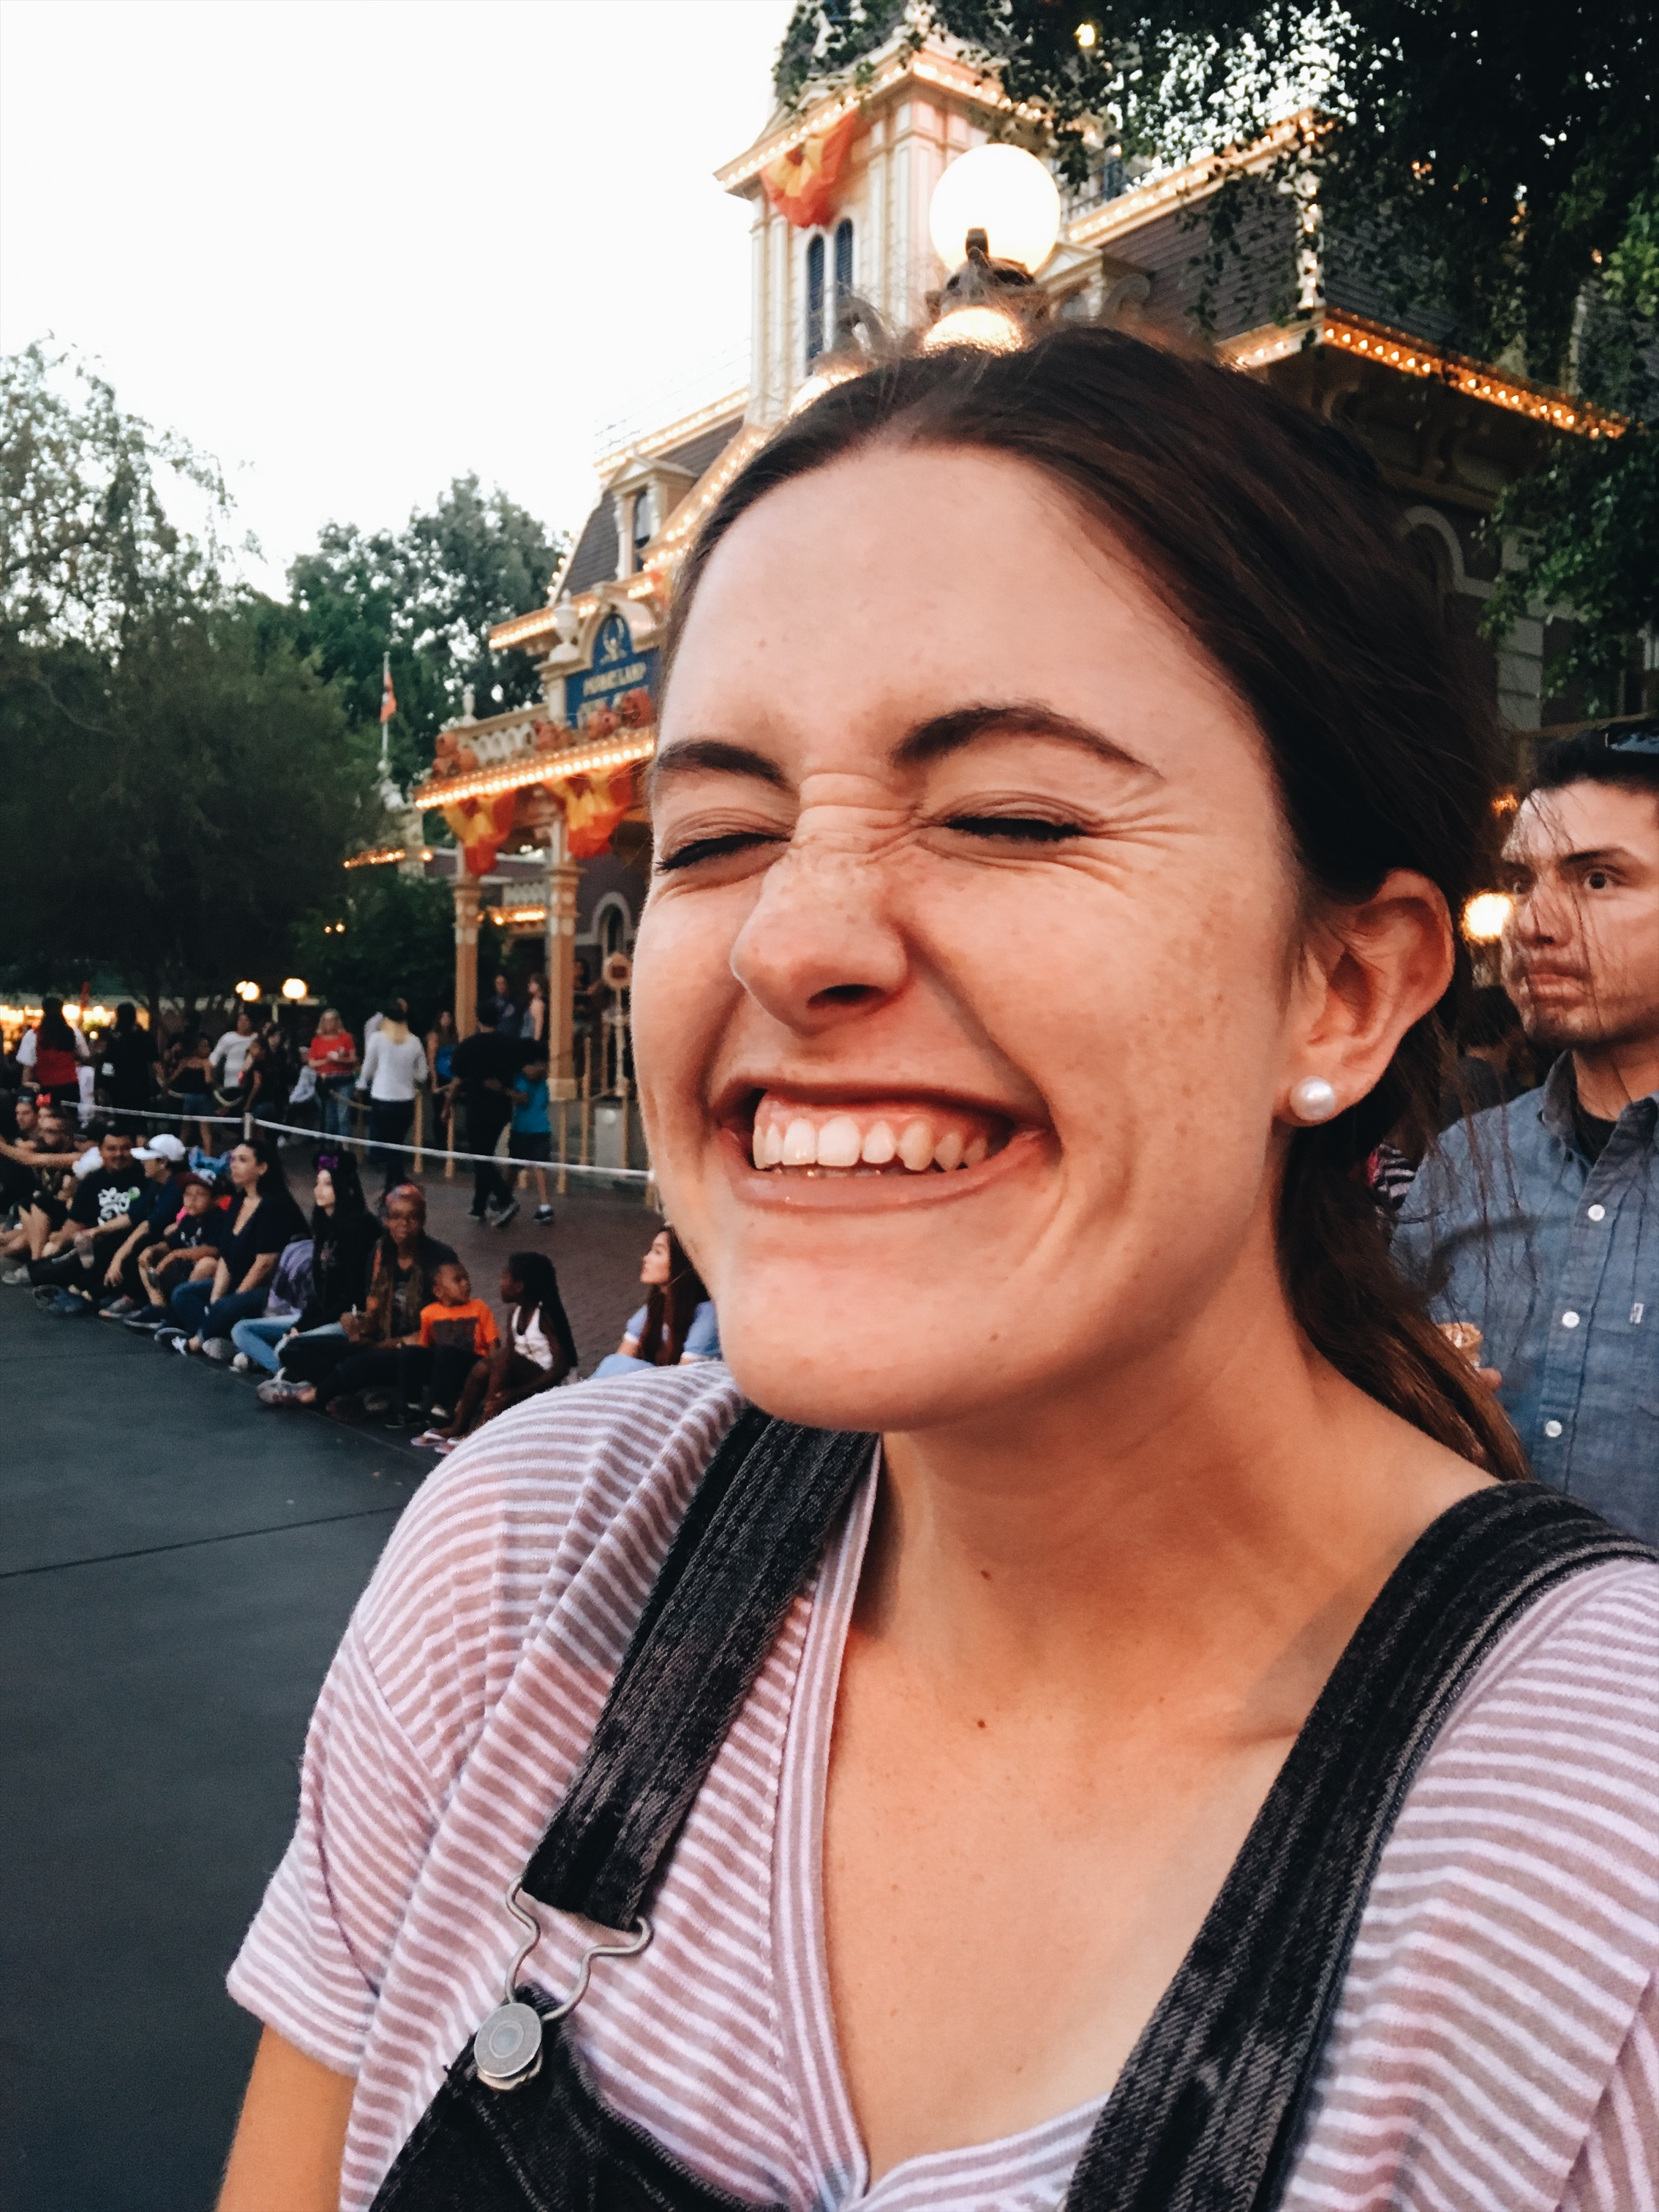 when you see the Mickey Mouse parade coming...